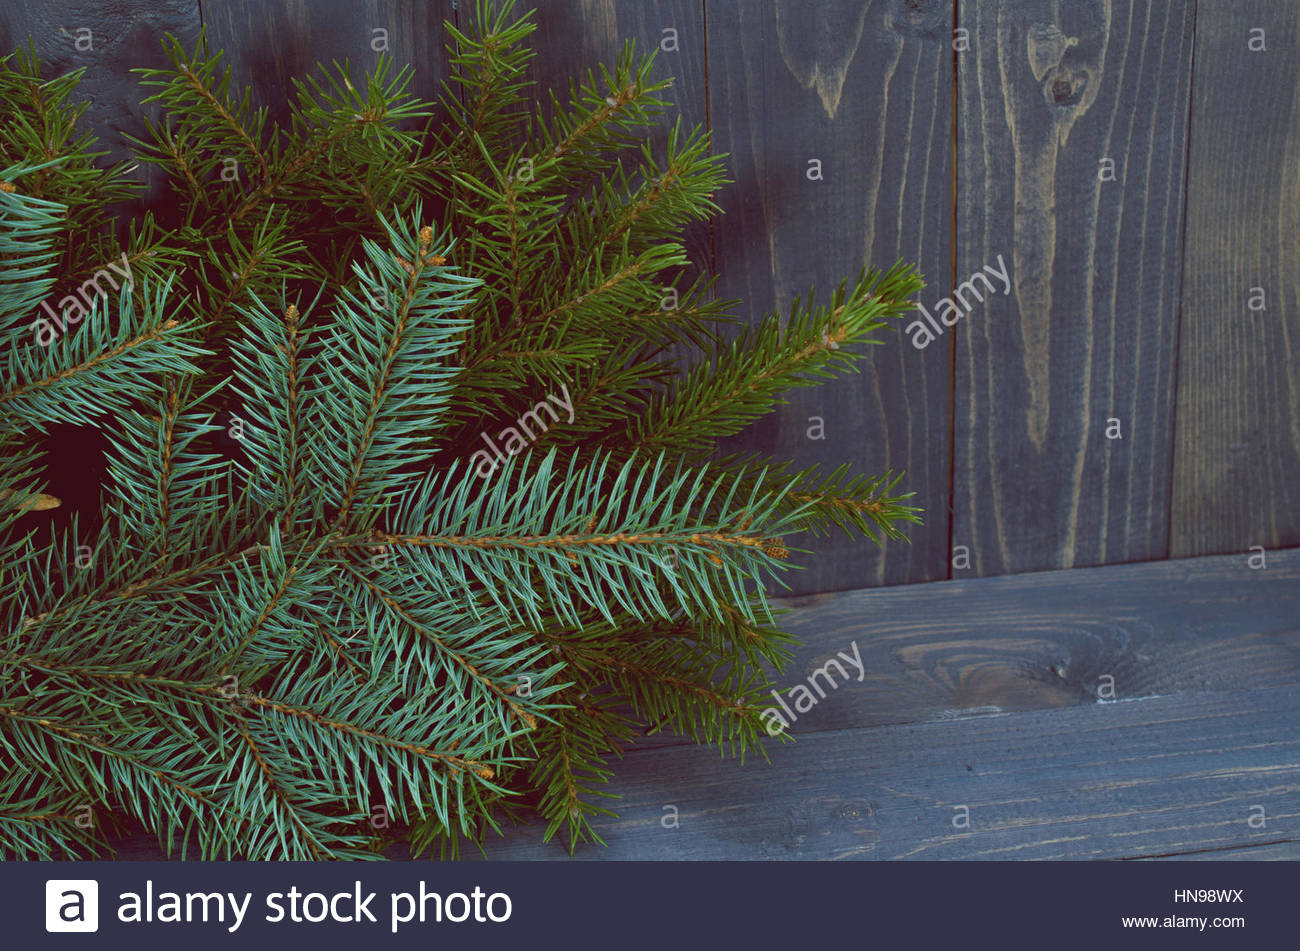 Pine Branches On Dark Wood Background - Stock Image